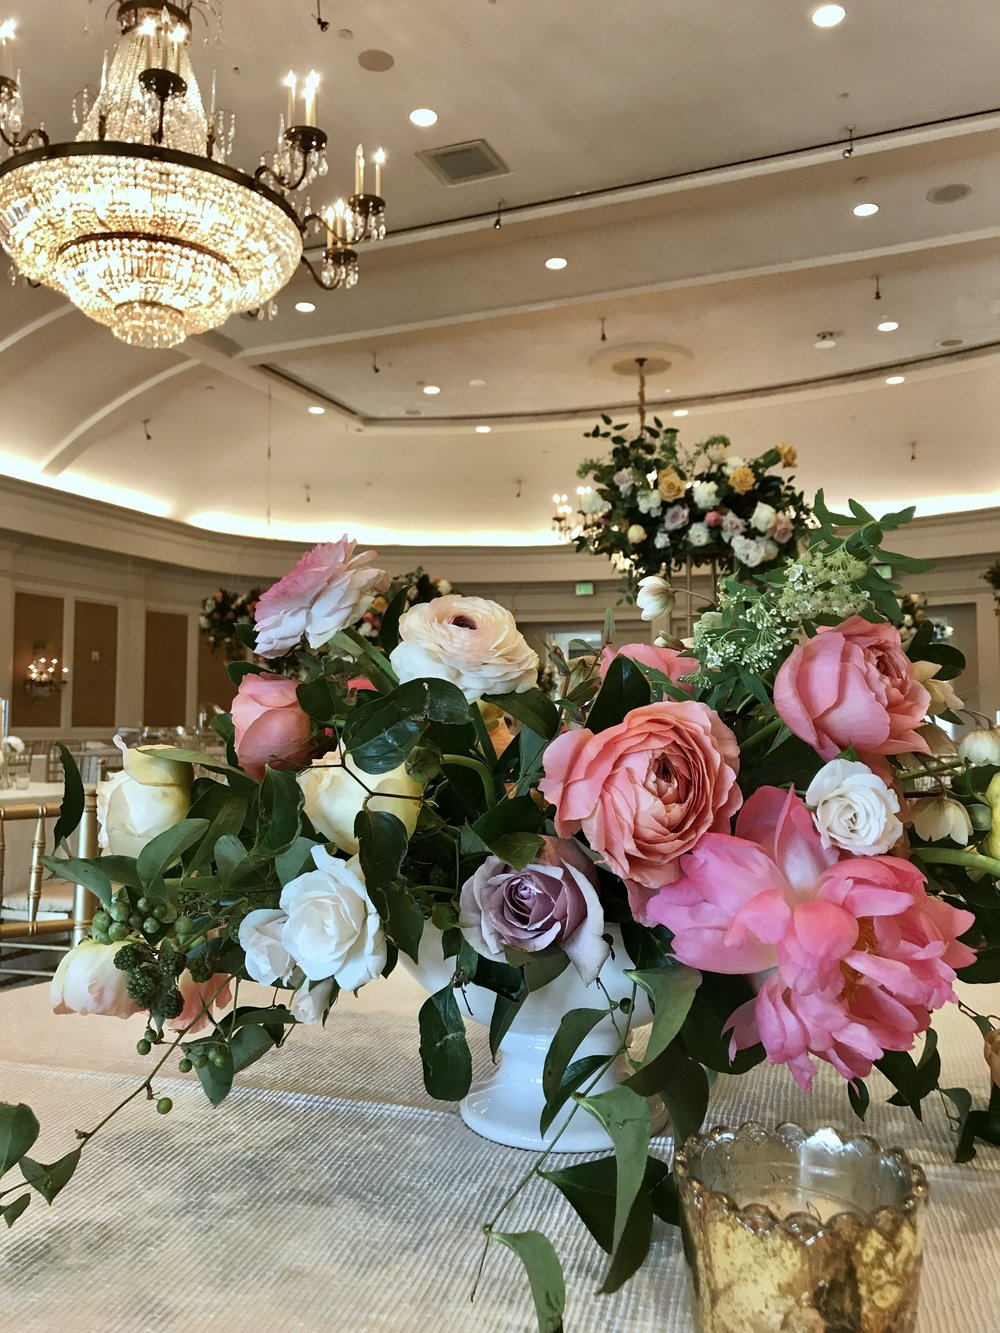 Compote arrangement of lush, premium flowers. White ceramic container with coral charm peonies, garden roses, roses, ranunculus, spirea, black berries and smilax. Keely Thorne Event Planning, River Oaks Country Club, Maxit Flower Design